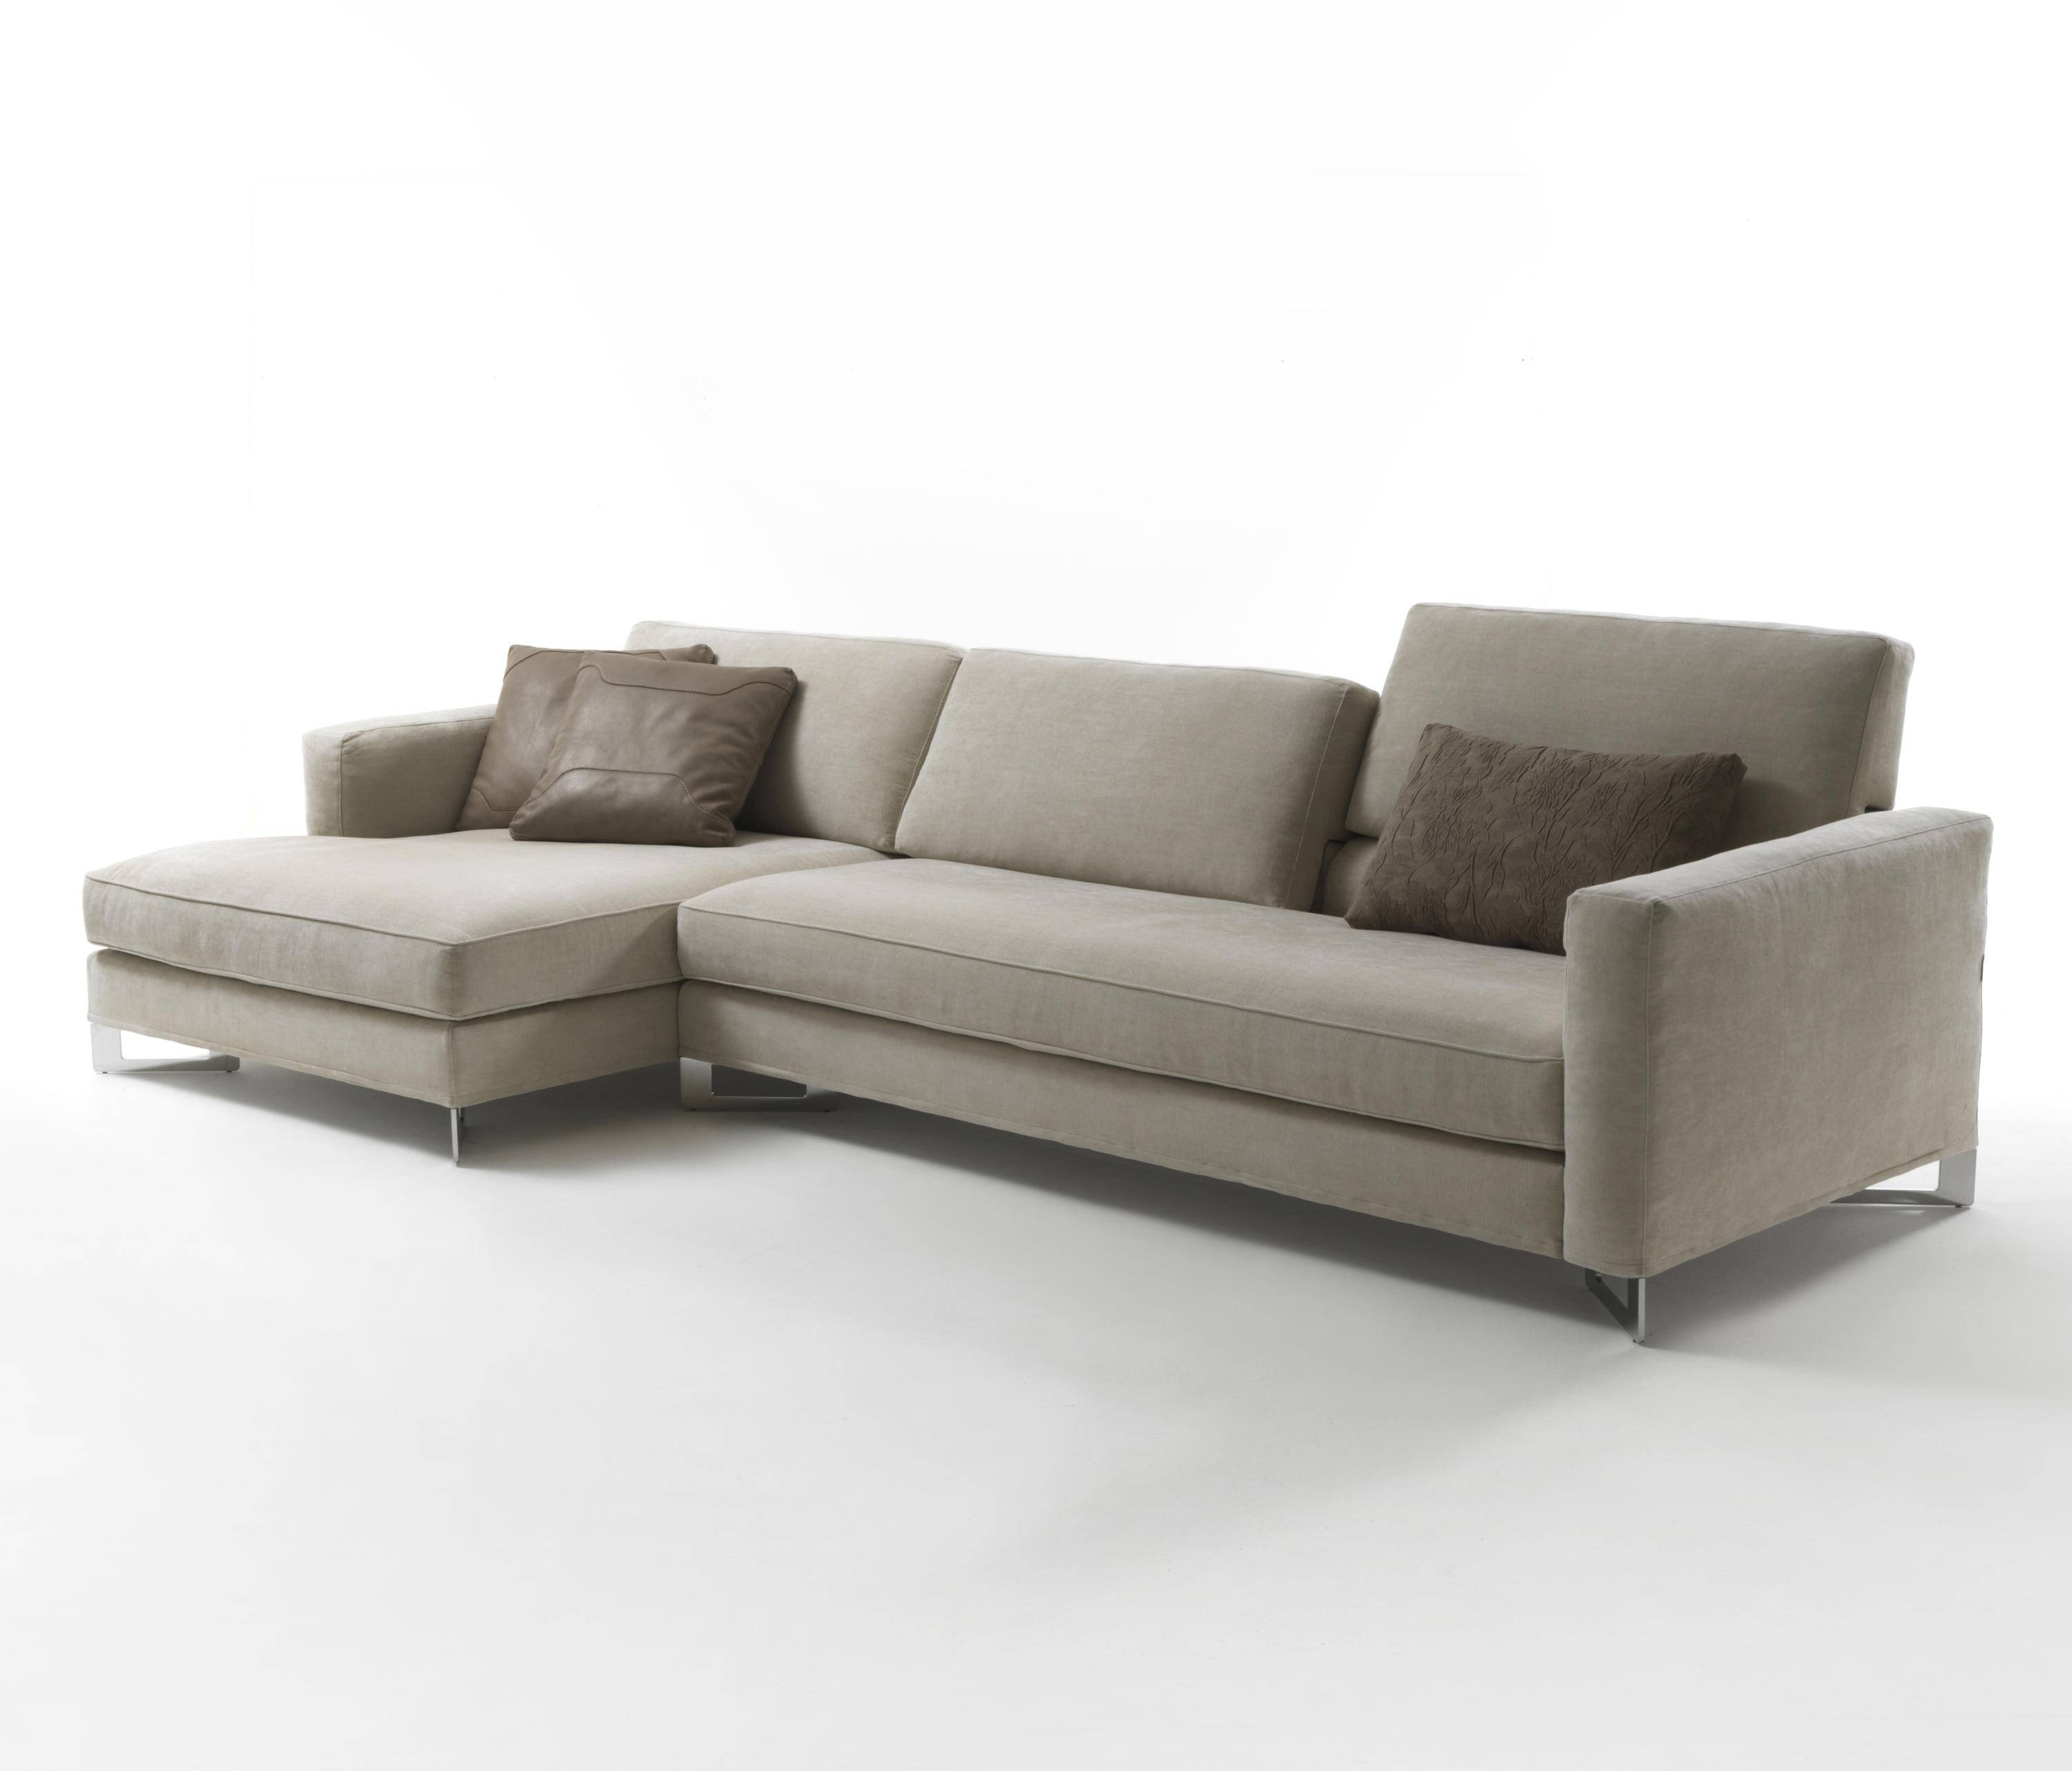 Davis Out - Sofas From Frigerio | Architonic in Davis Sofas (Image 7 of 15)